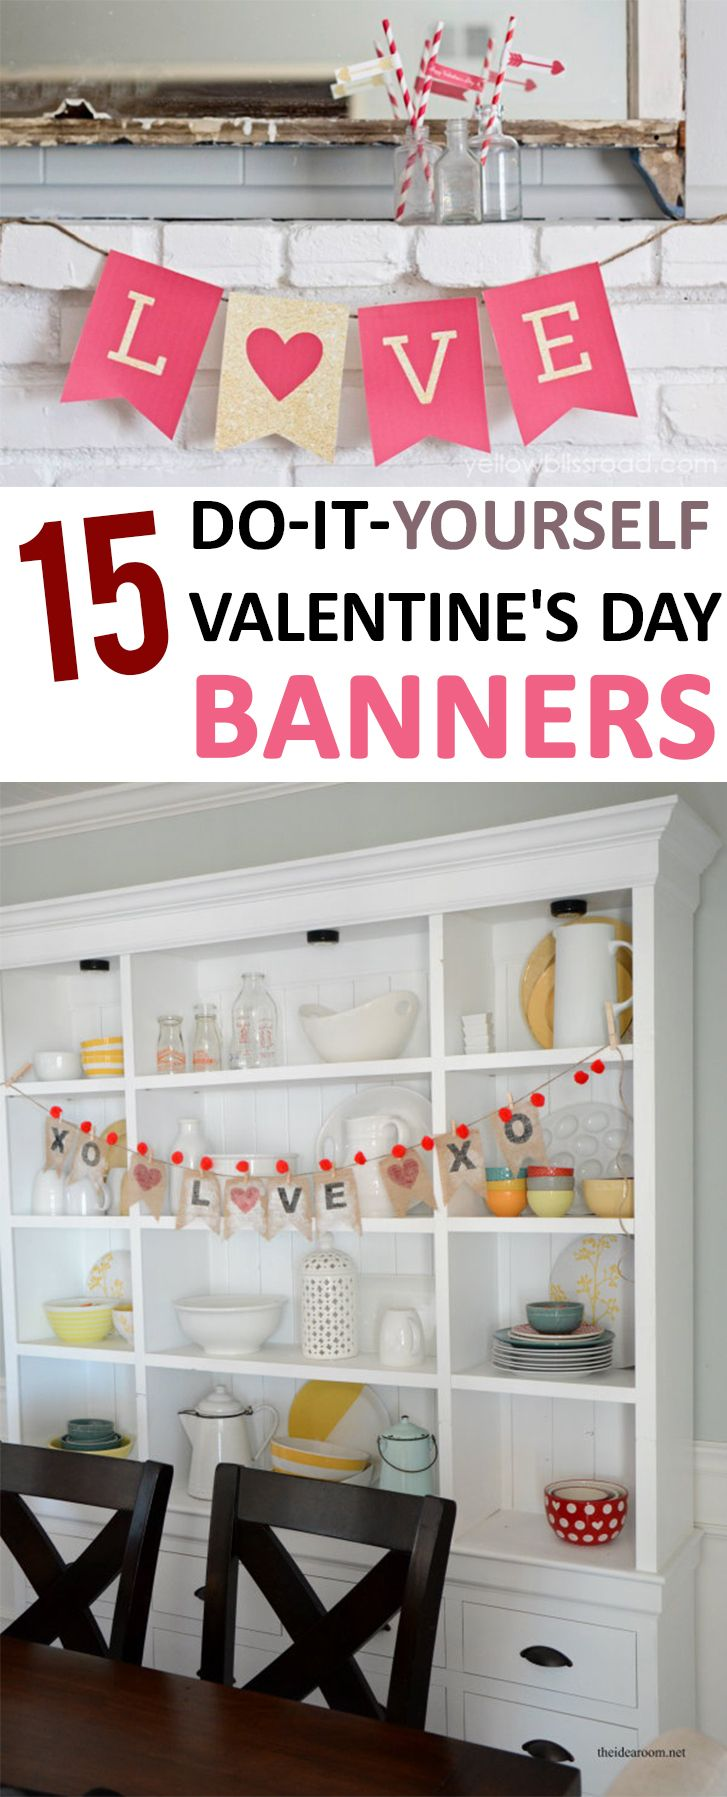 15 do it yourself valentines day banners holidays banners and 15 do it yourself valentines day banners solutioingenieria Image collections